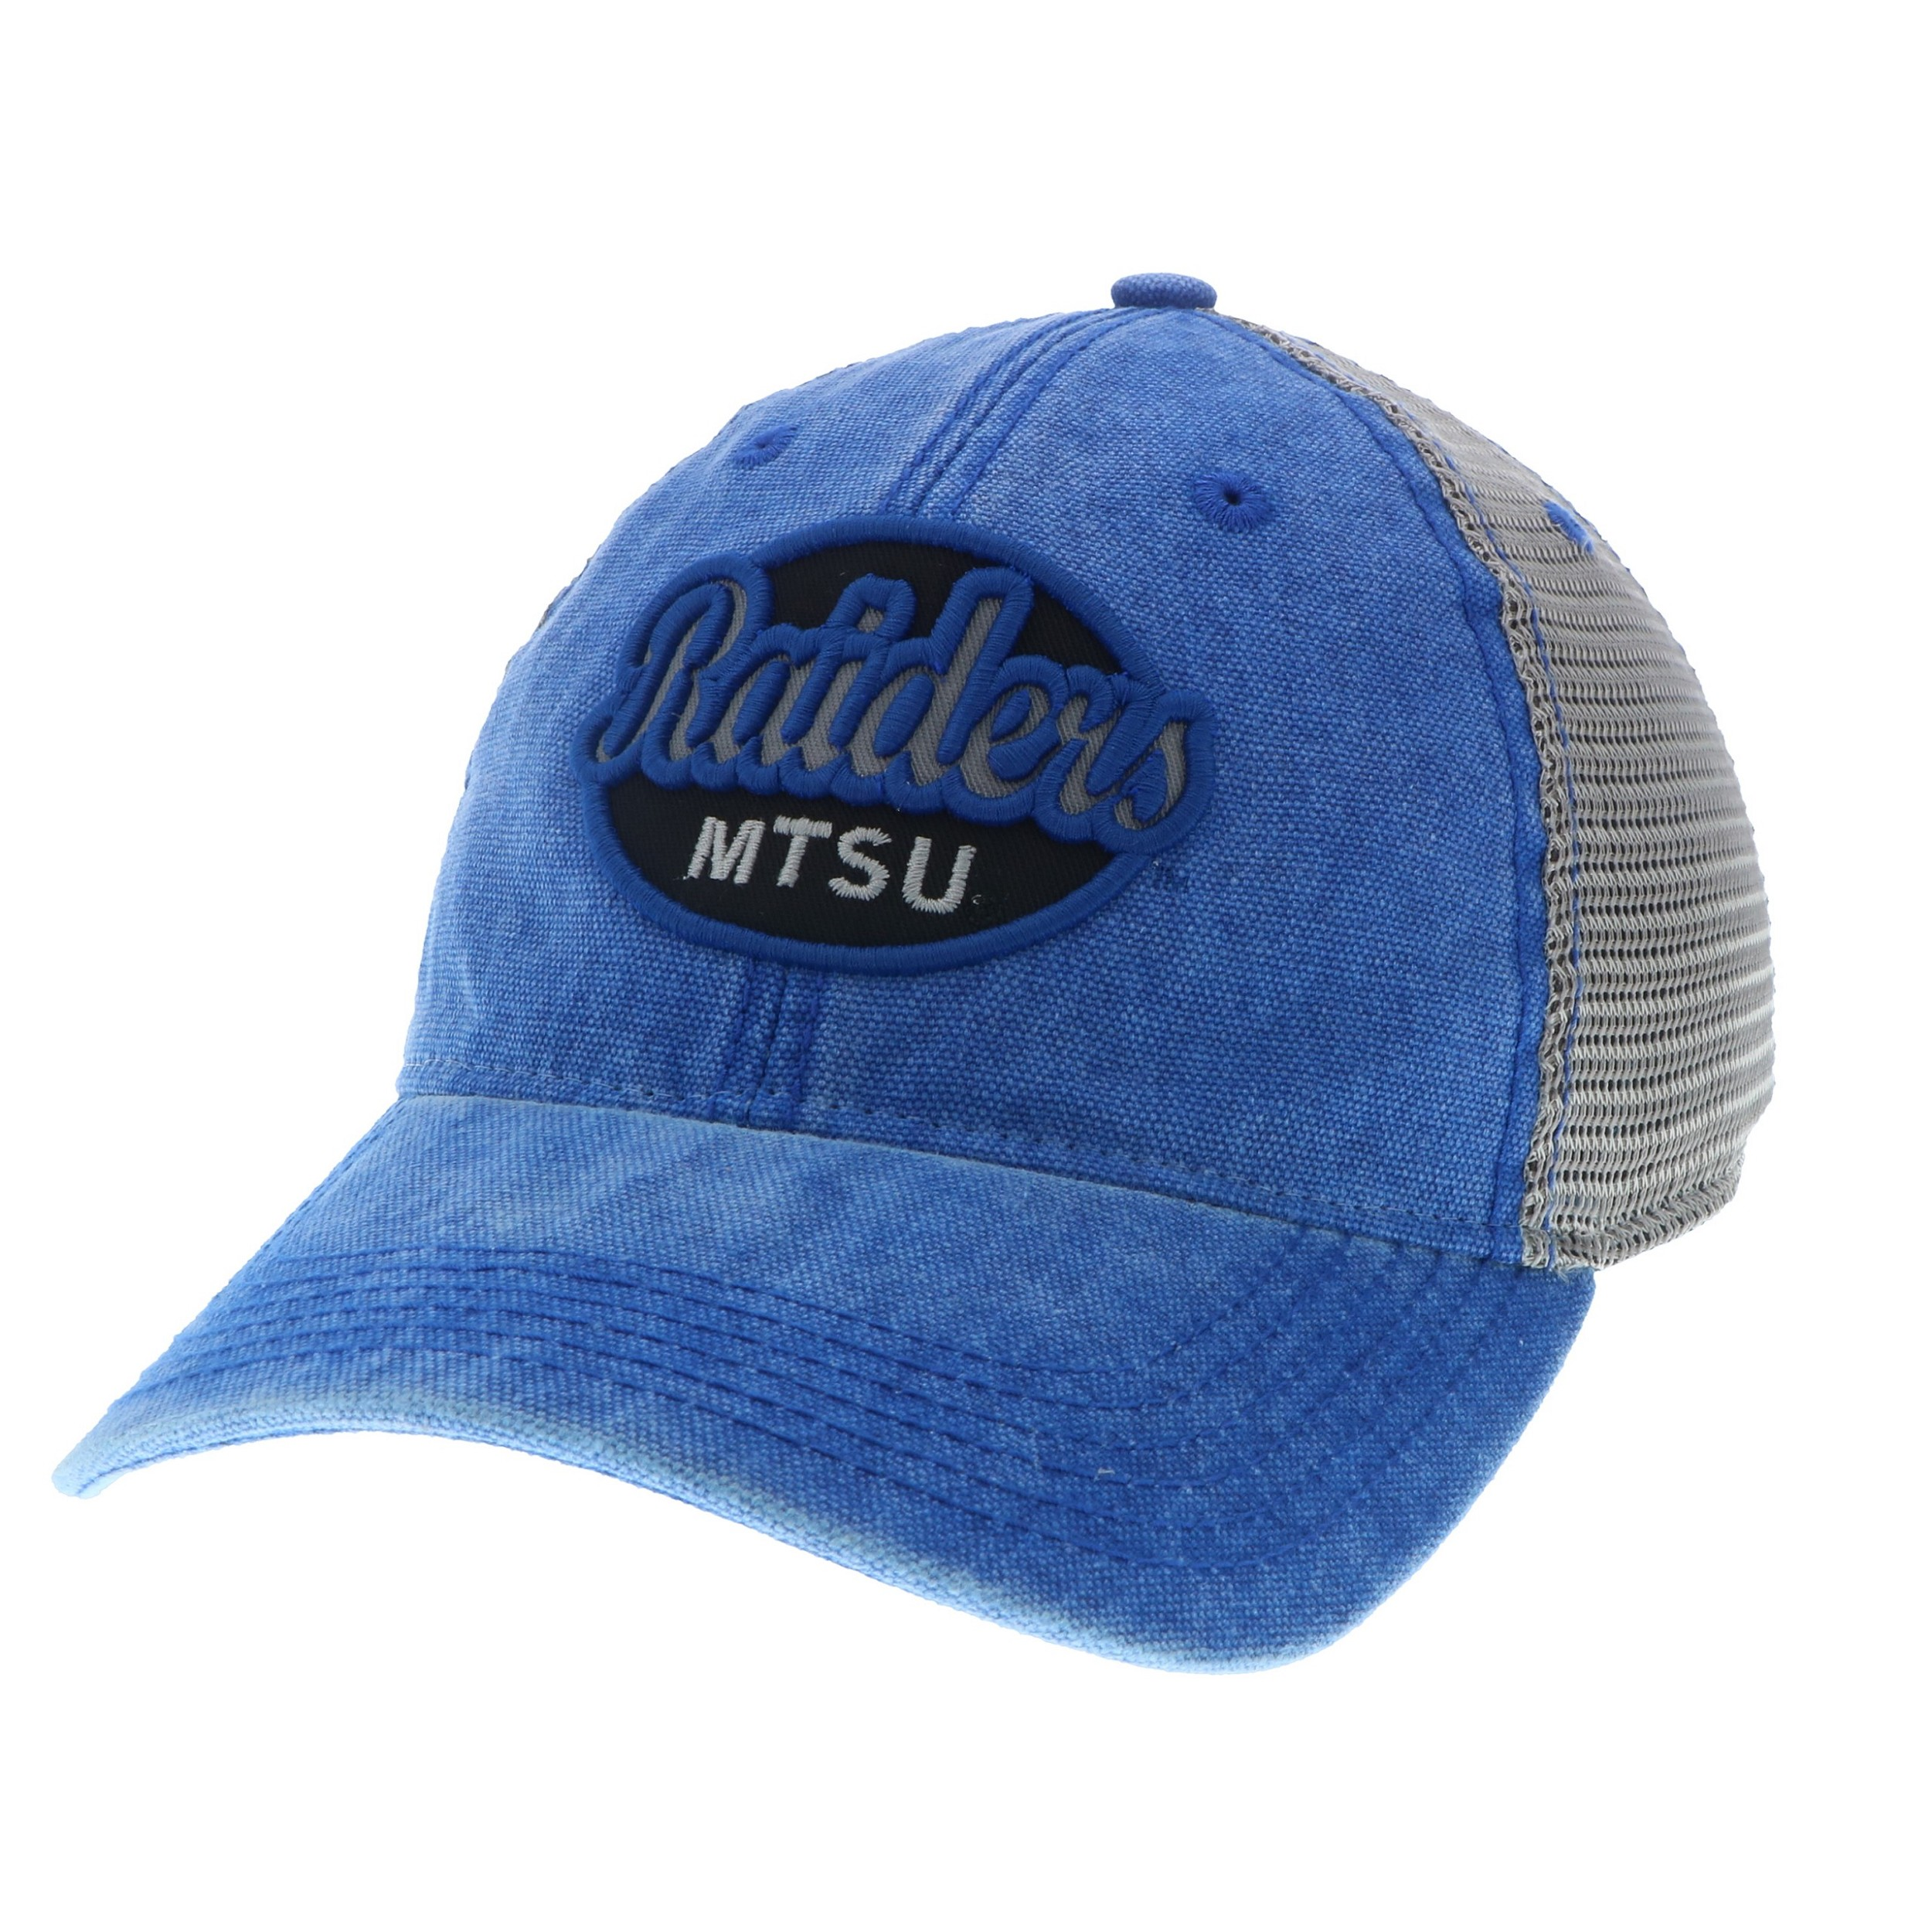 Raiders MTSU Dashboard Trucker Hat